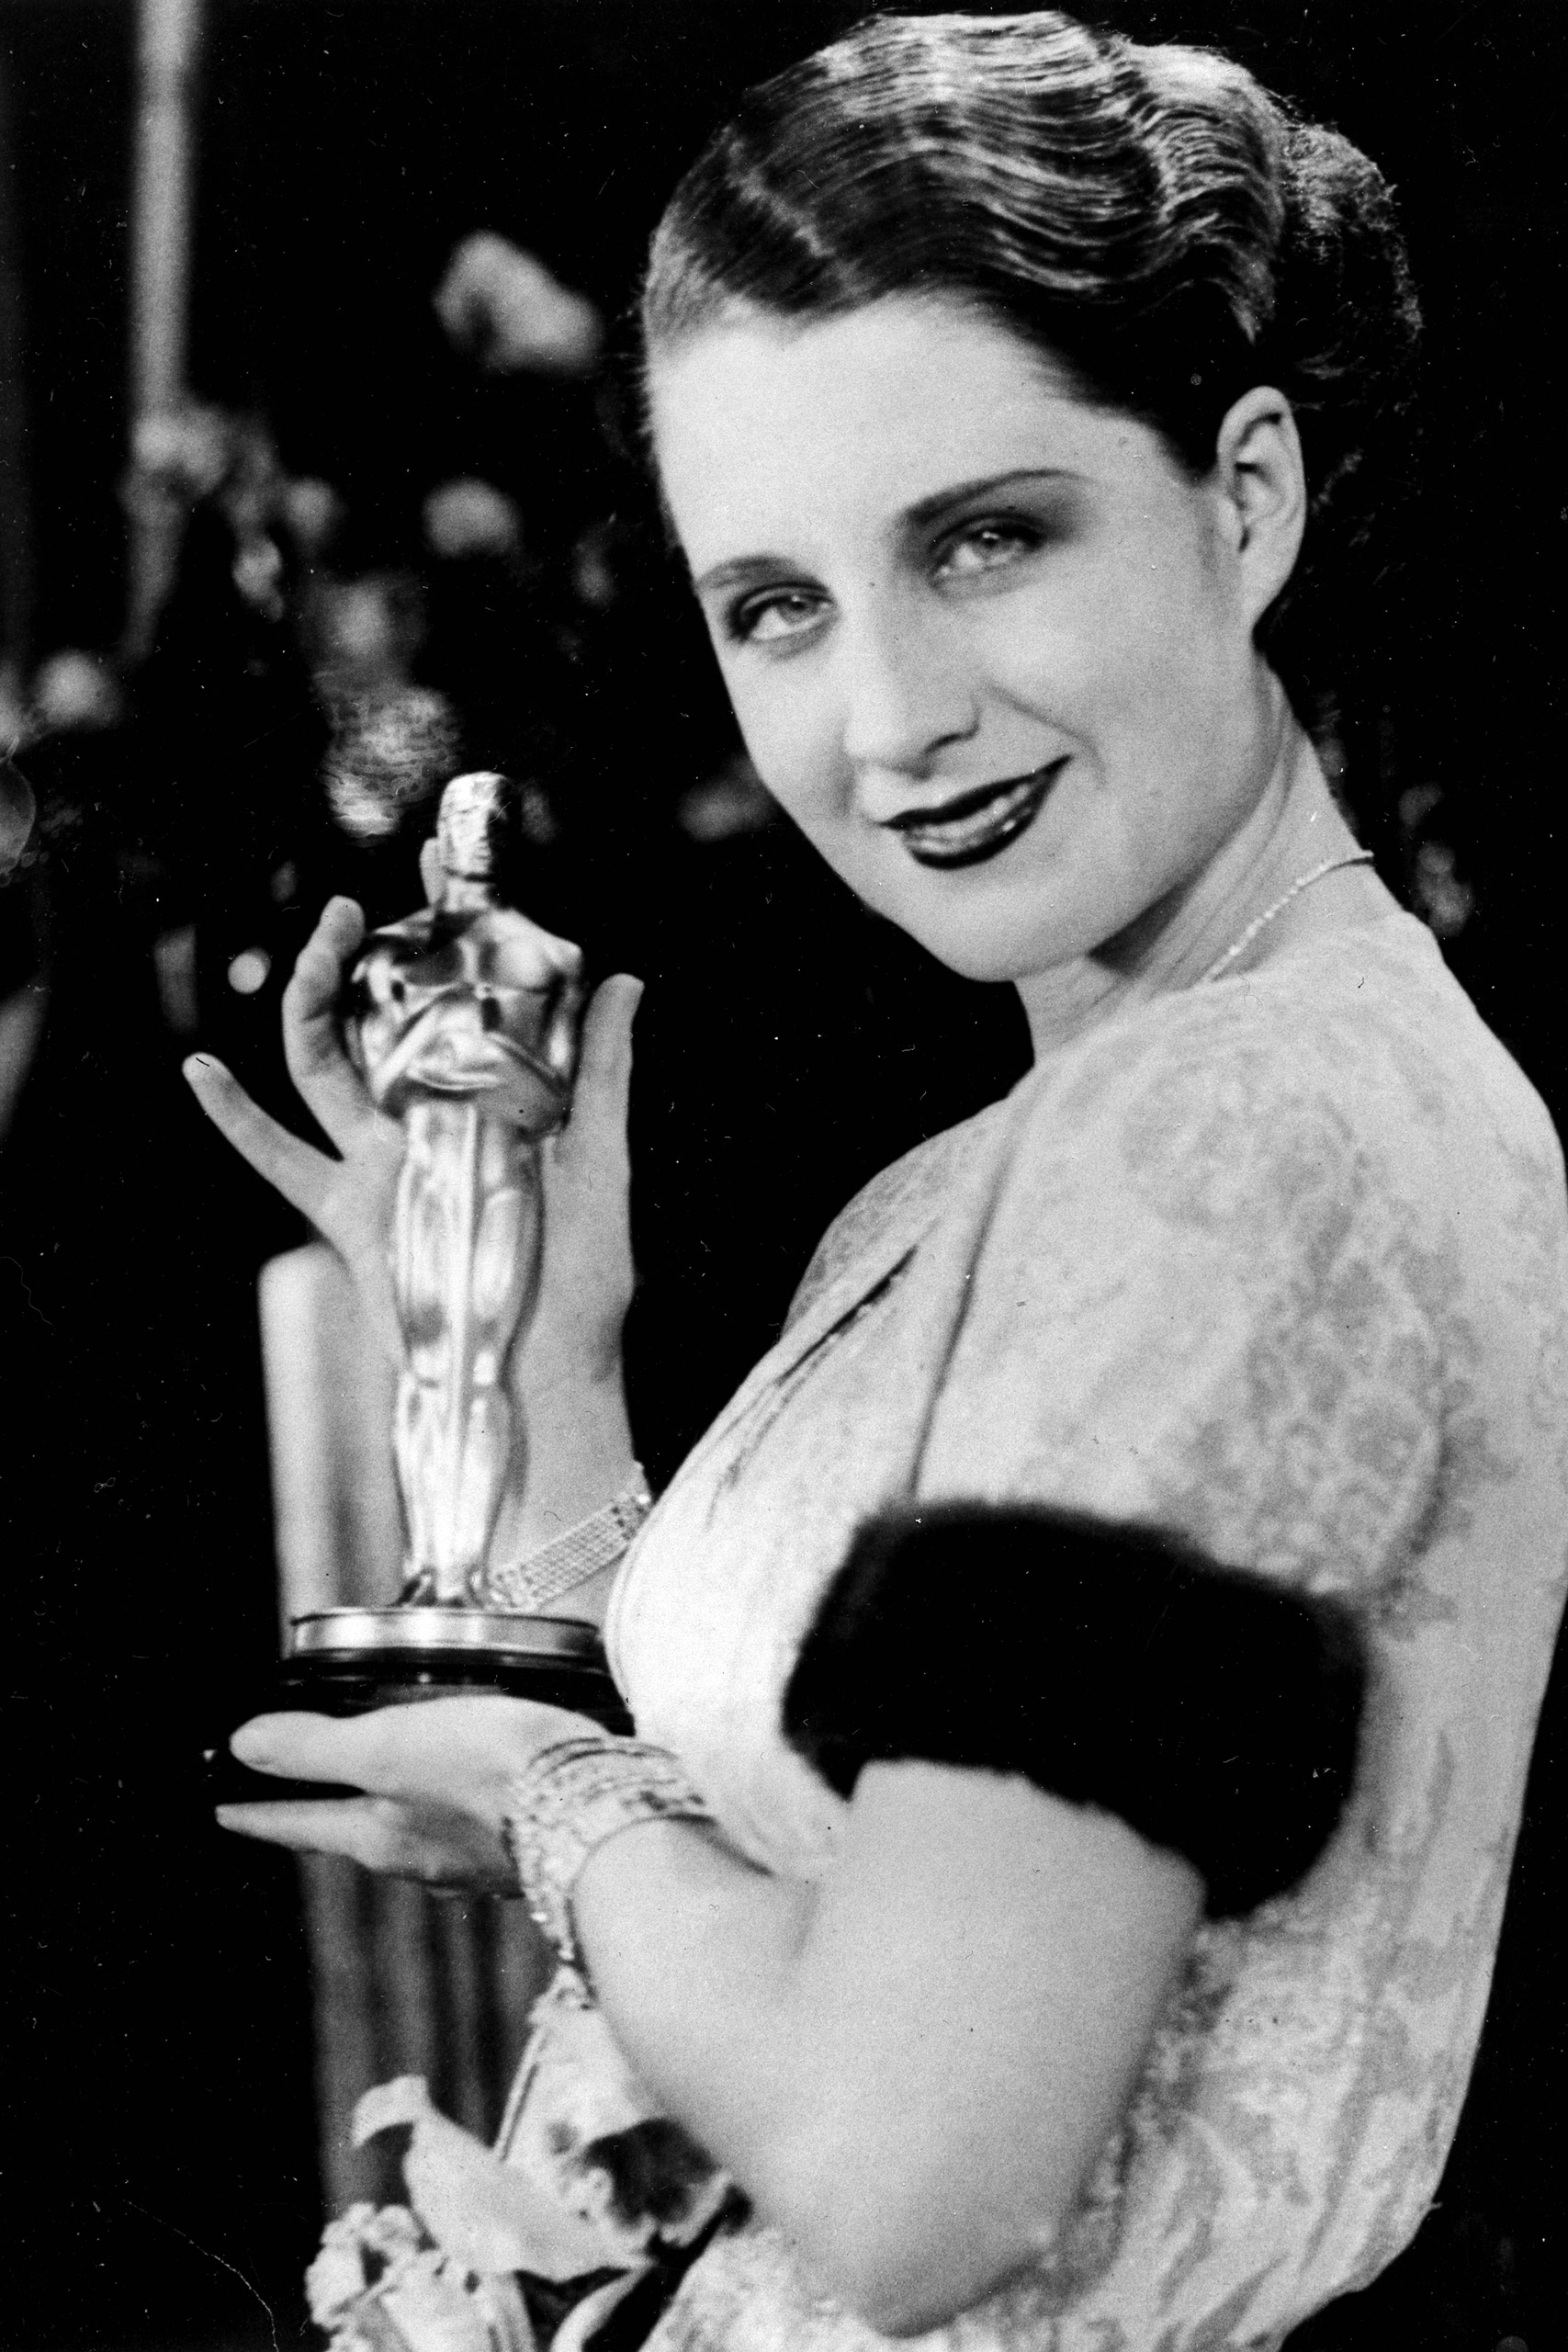 Norma Shearer poses with her Oscar at the Academy Awards banquet in 1930.